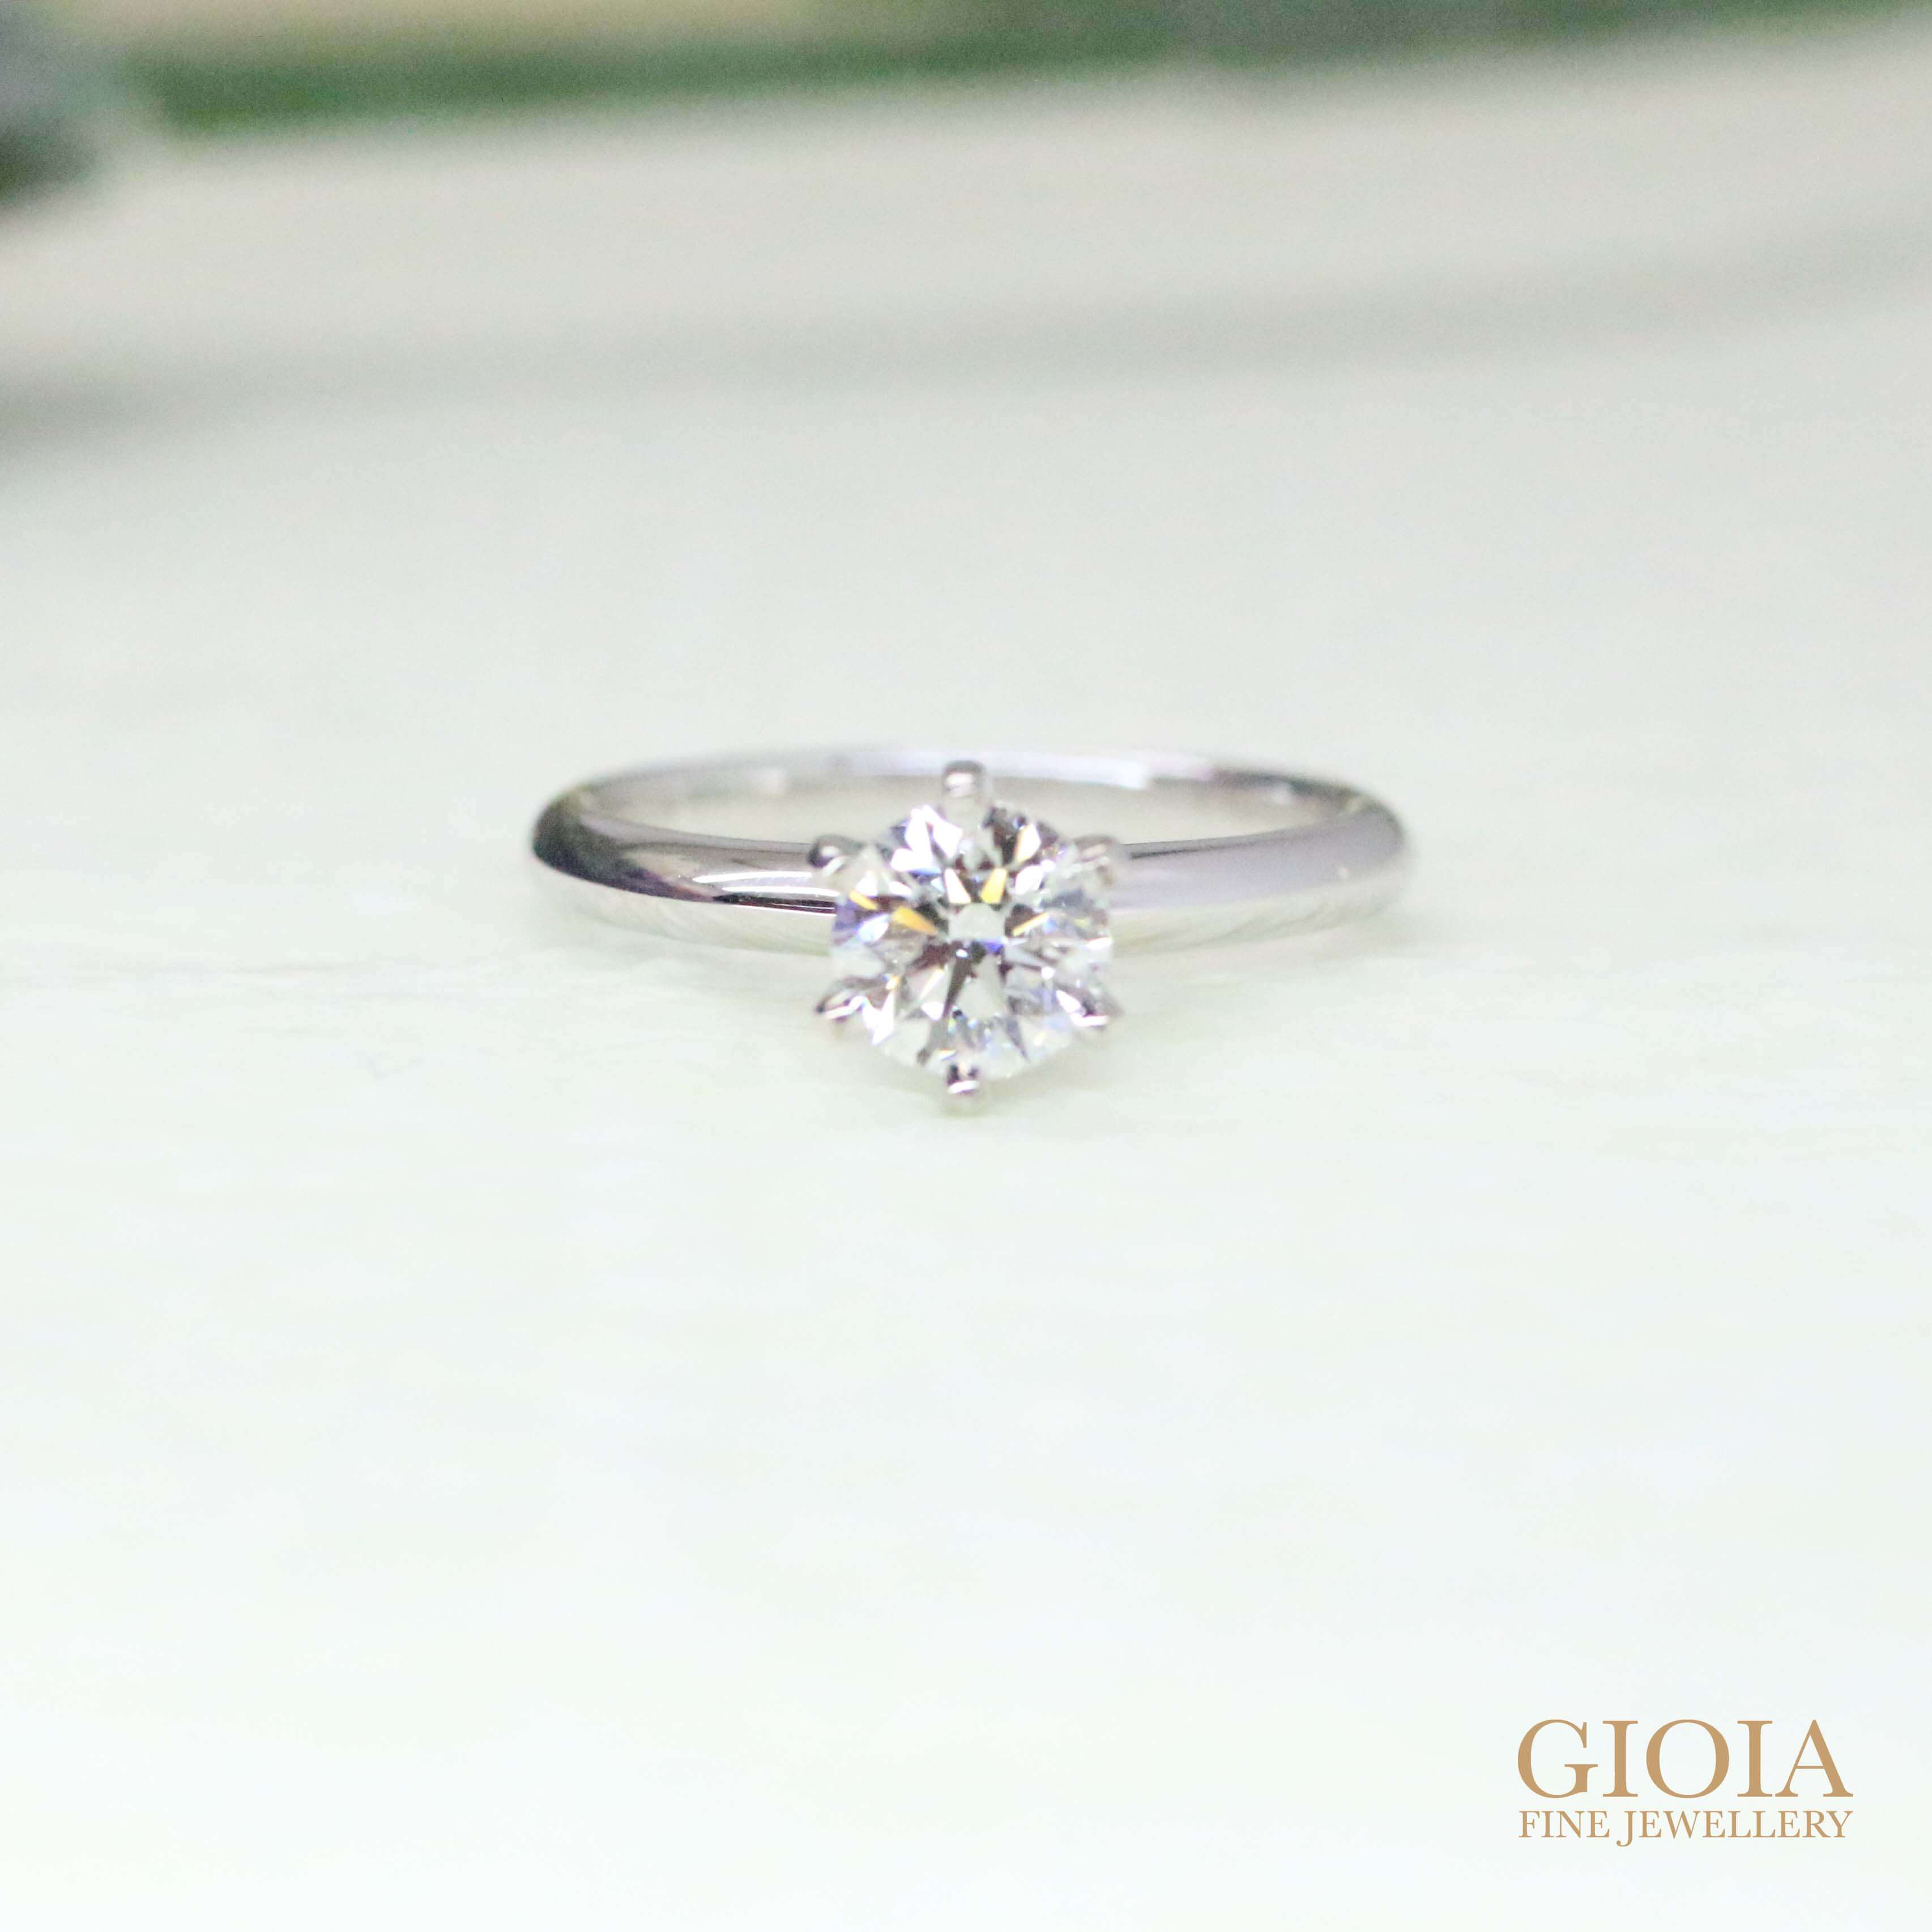 Diamond Ring for proposal ring - GIOIA Fine Jewellery